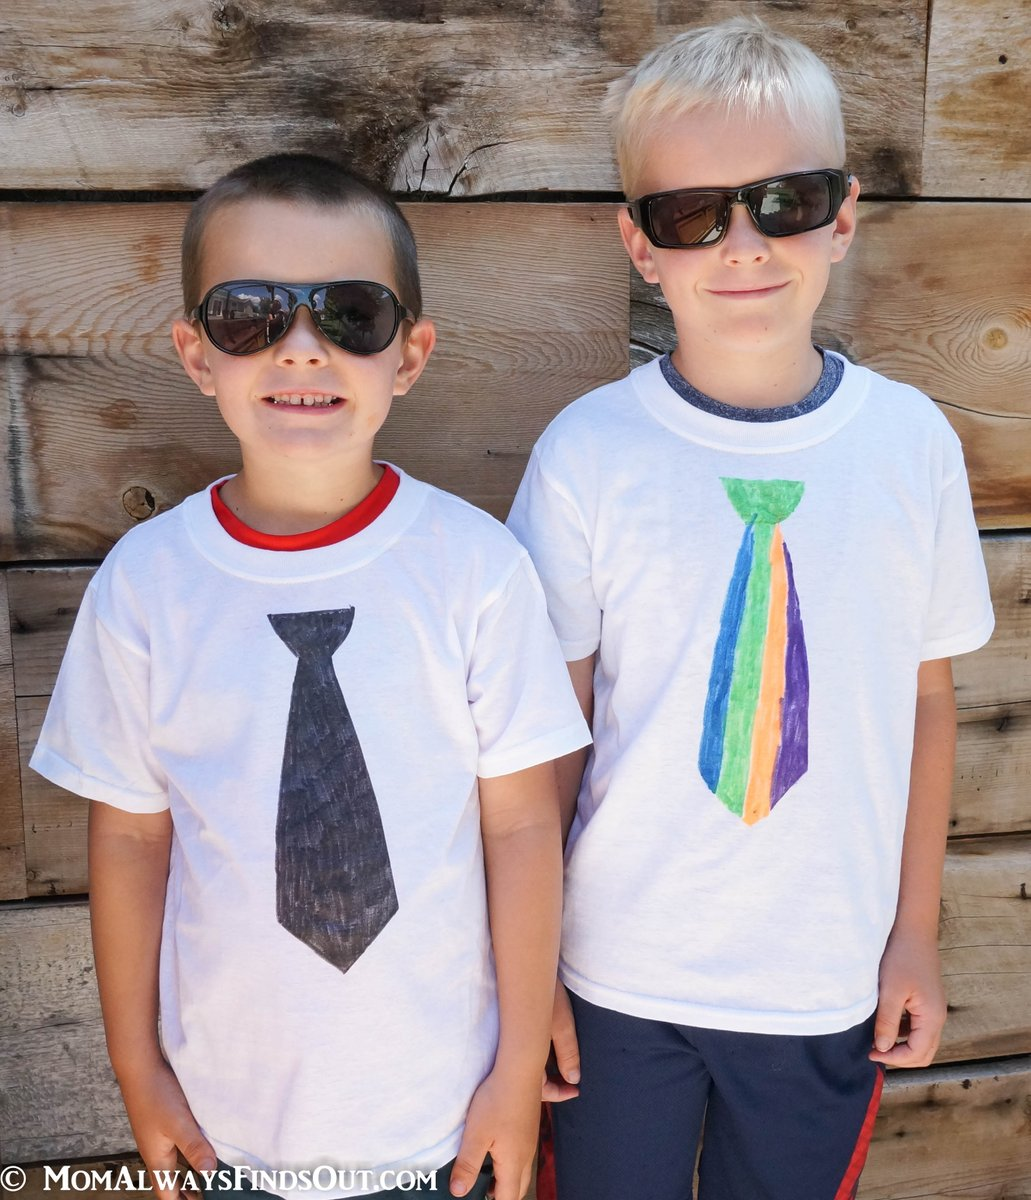 Kids love to color #DIY Necktie T-shirts! #ad Check out our #LikeABossBaby #Craft at  http://www. momalwaysfindsout.com/recipe/the-bos s-baby/ &nbsp; …  #TheBossBaby #MovieNight<br>http://pic.twitter.com/vG2sUSpAUp